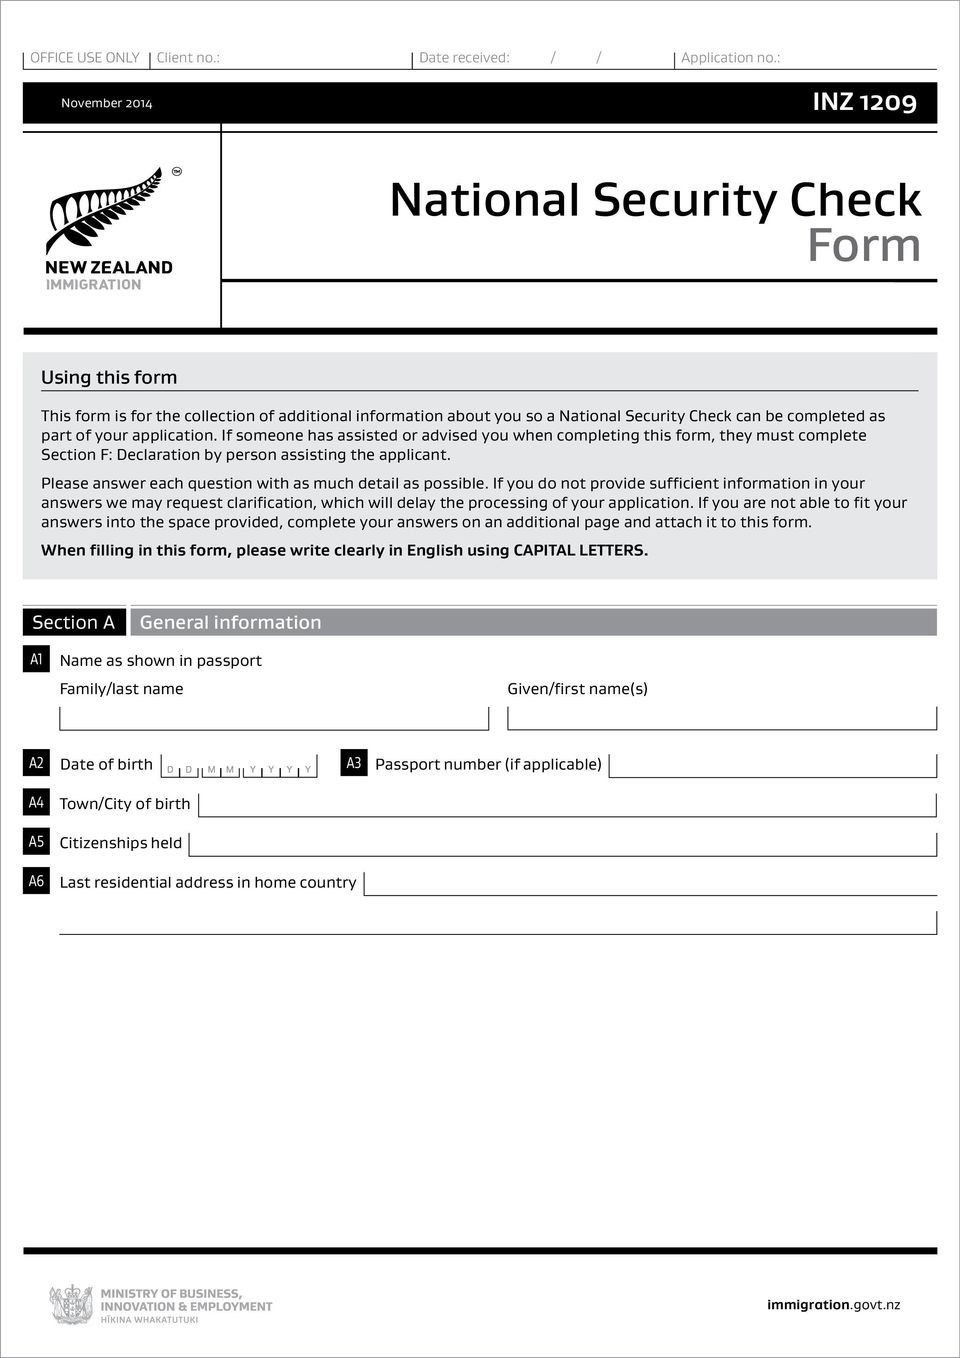 application. If someone has assisted or advised you when completing this form, they must complete Section F: Declaration by person assisting the applicant.